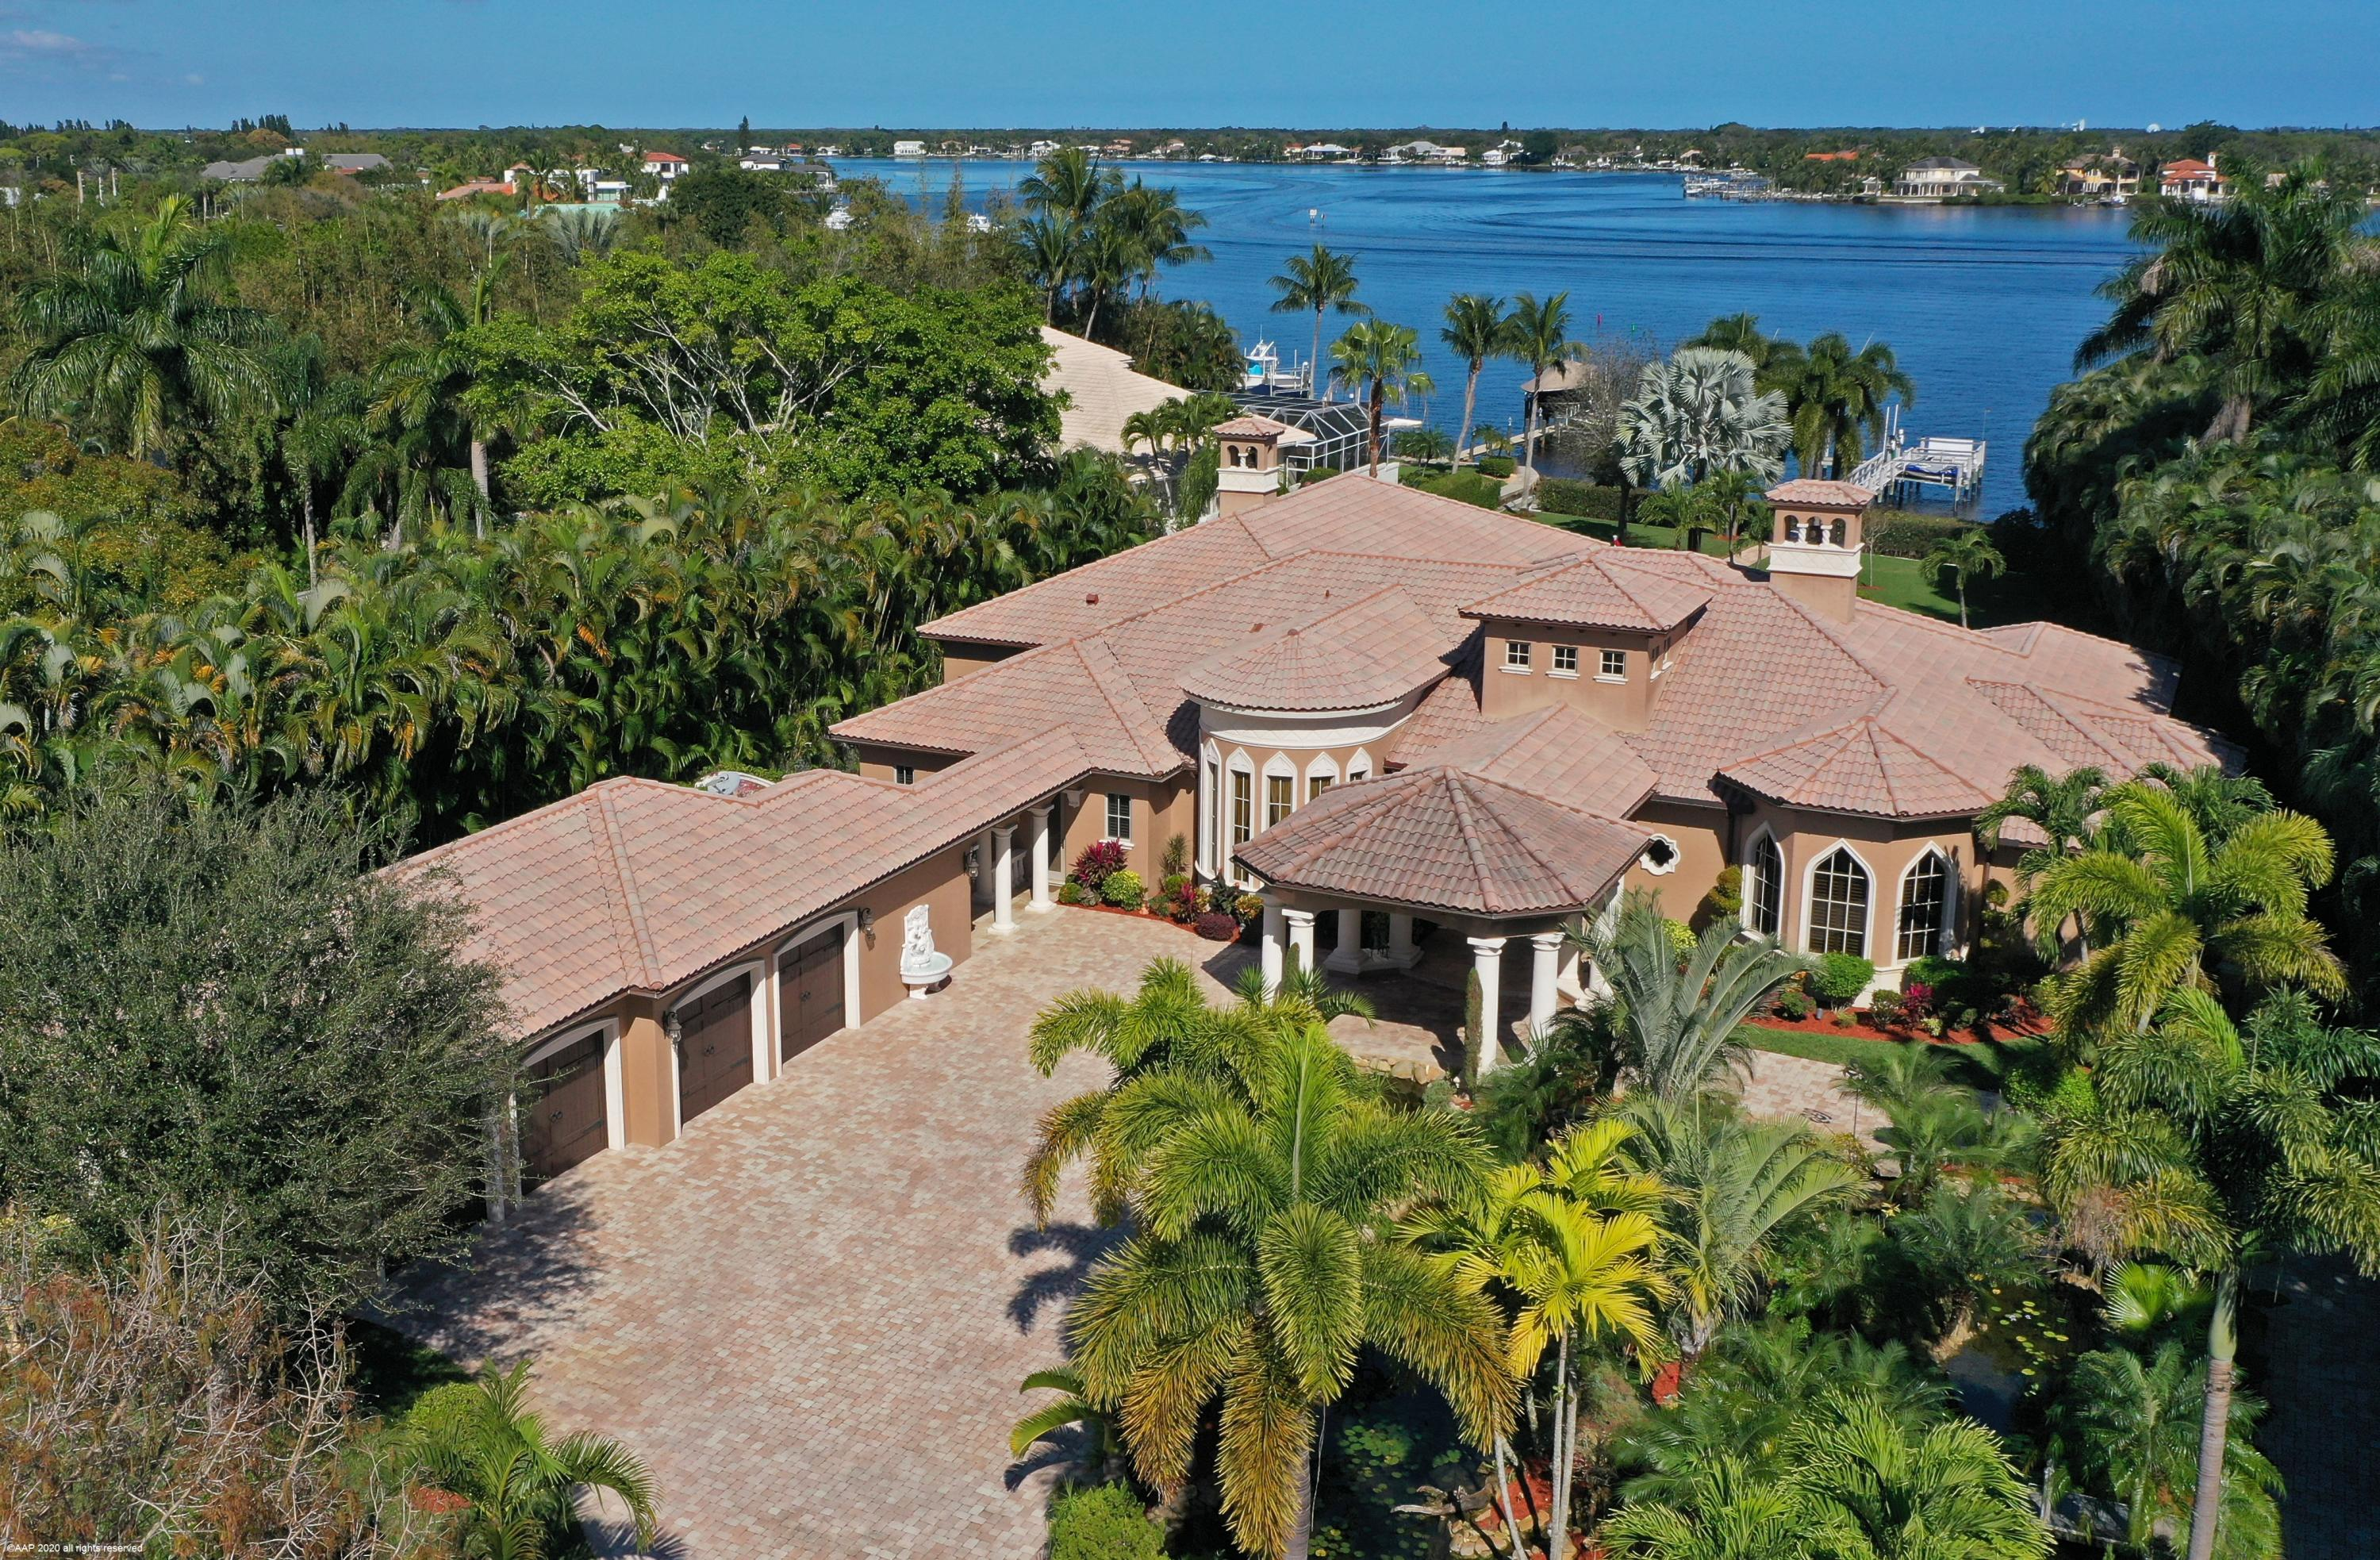 Florida Homes for Sale | Water Pointe Realty Group on san antonio ranch home, tampa ranch home, ocala ranch home, florida ranch home, rolling hills ranch home, key west ranch home, estate ranch home, fort lauderdale ranch home,